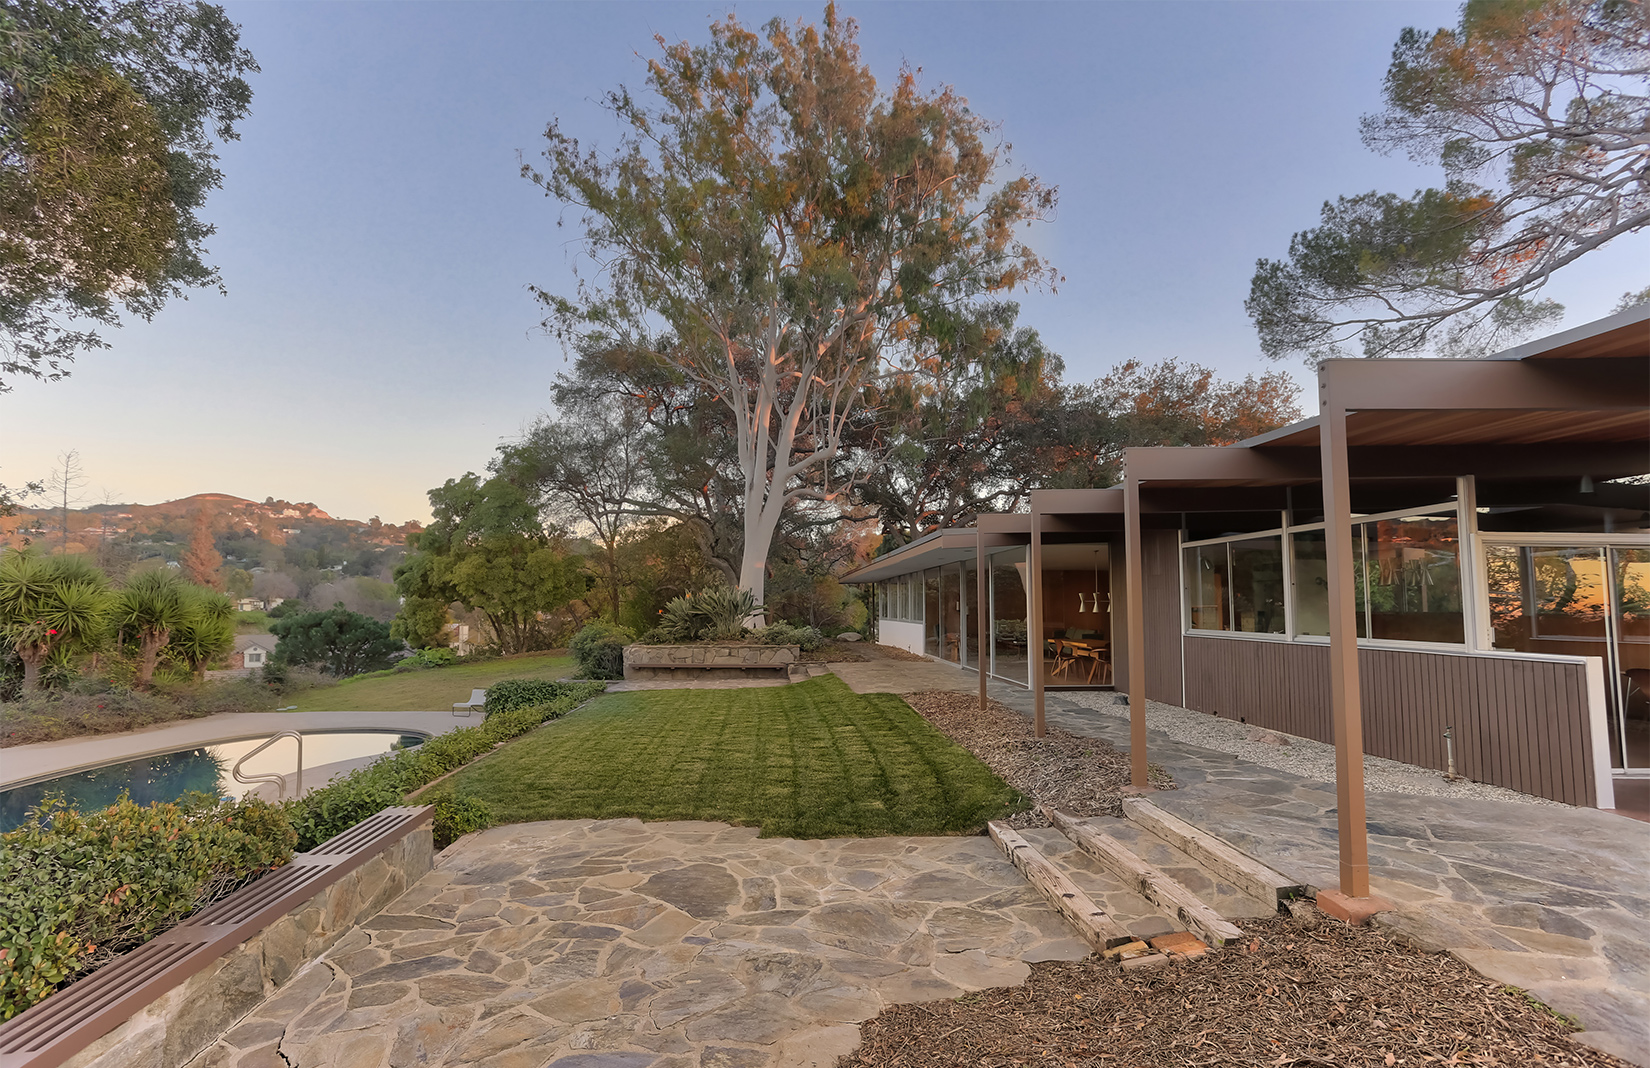 JM Roberts Residence at 621 Wrede Way by Richard Neutra